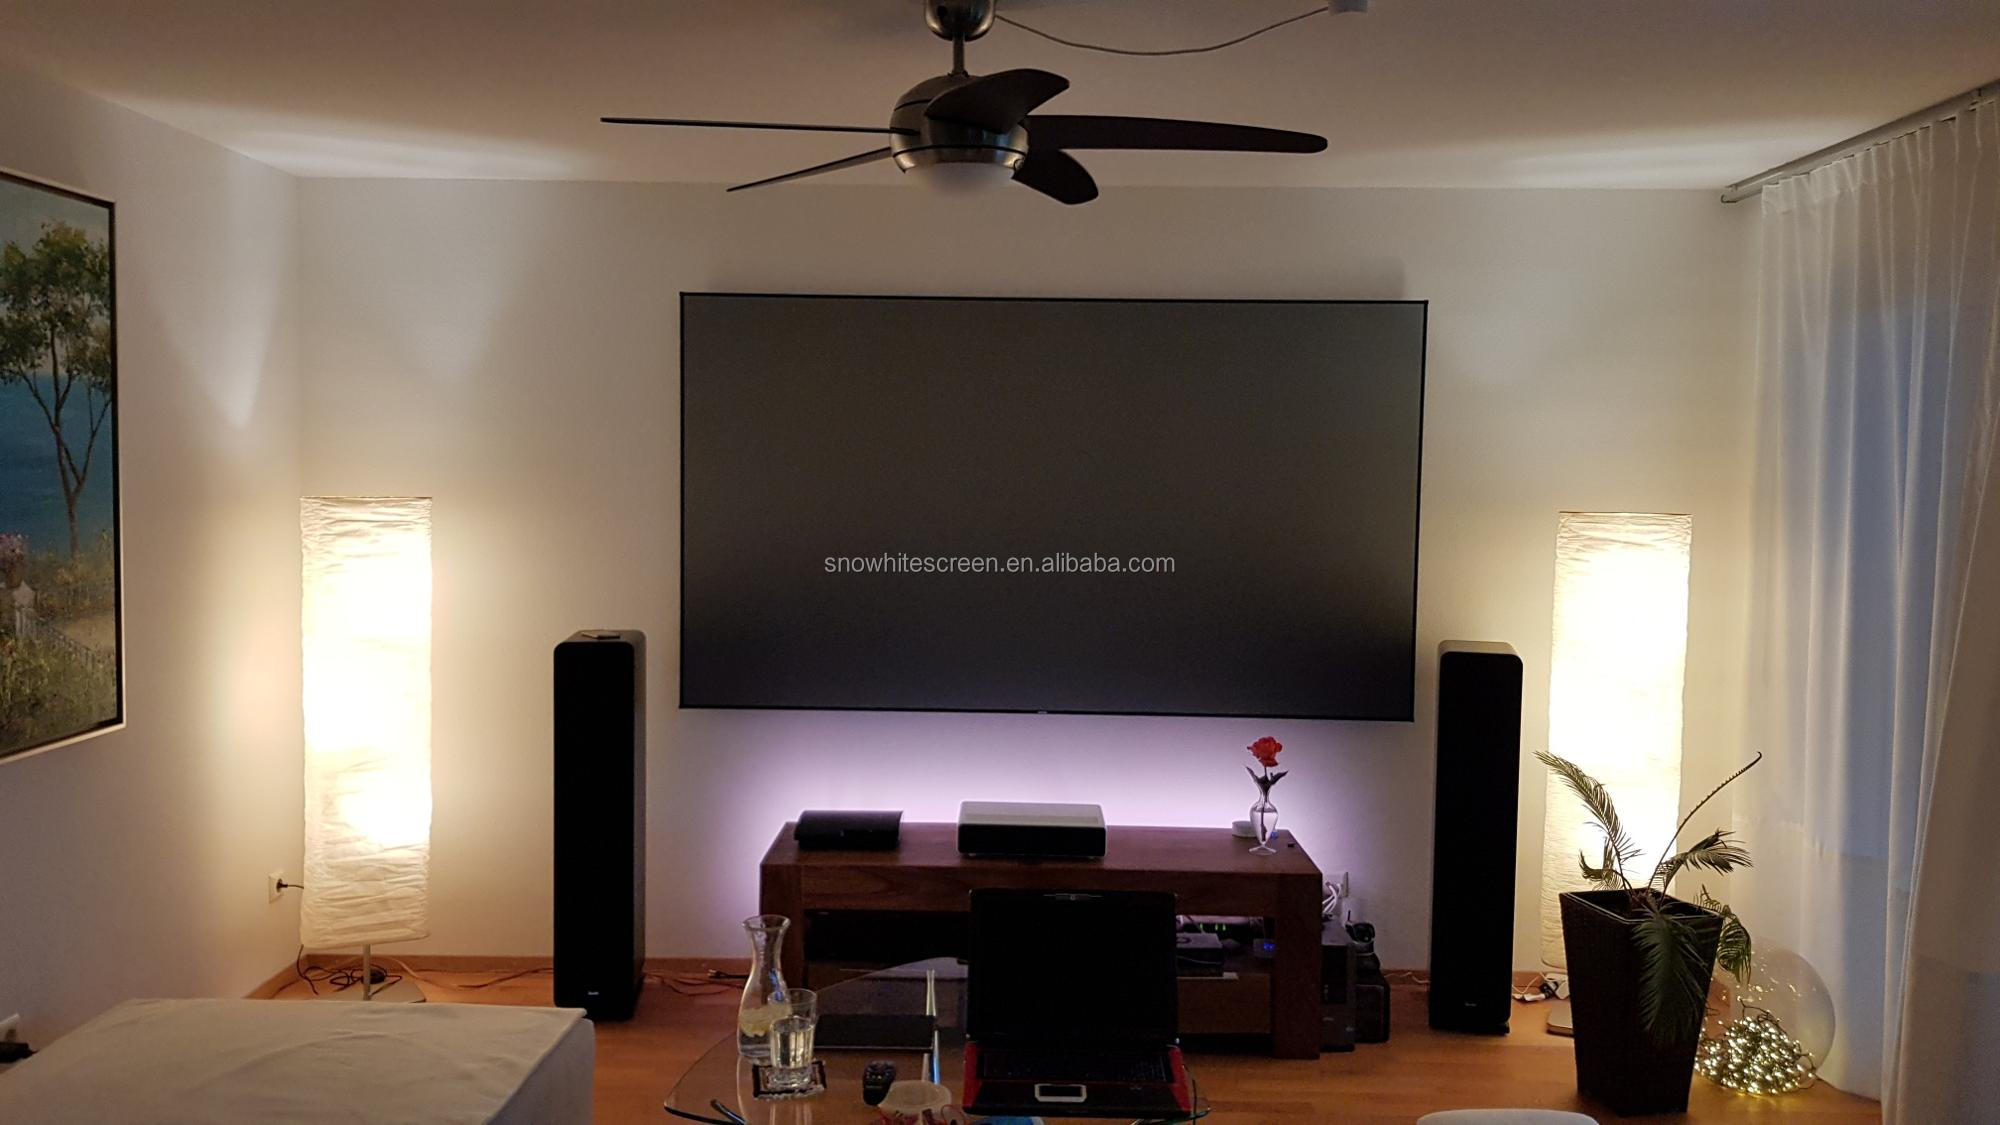 "SNOWHITE 120 "" 16:9 Format alr ust ultra short throw projector screen"